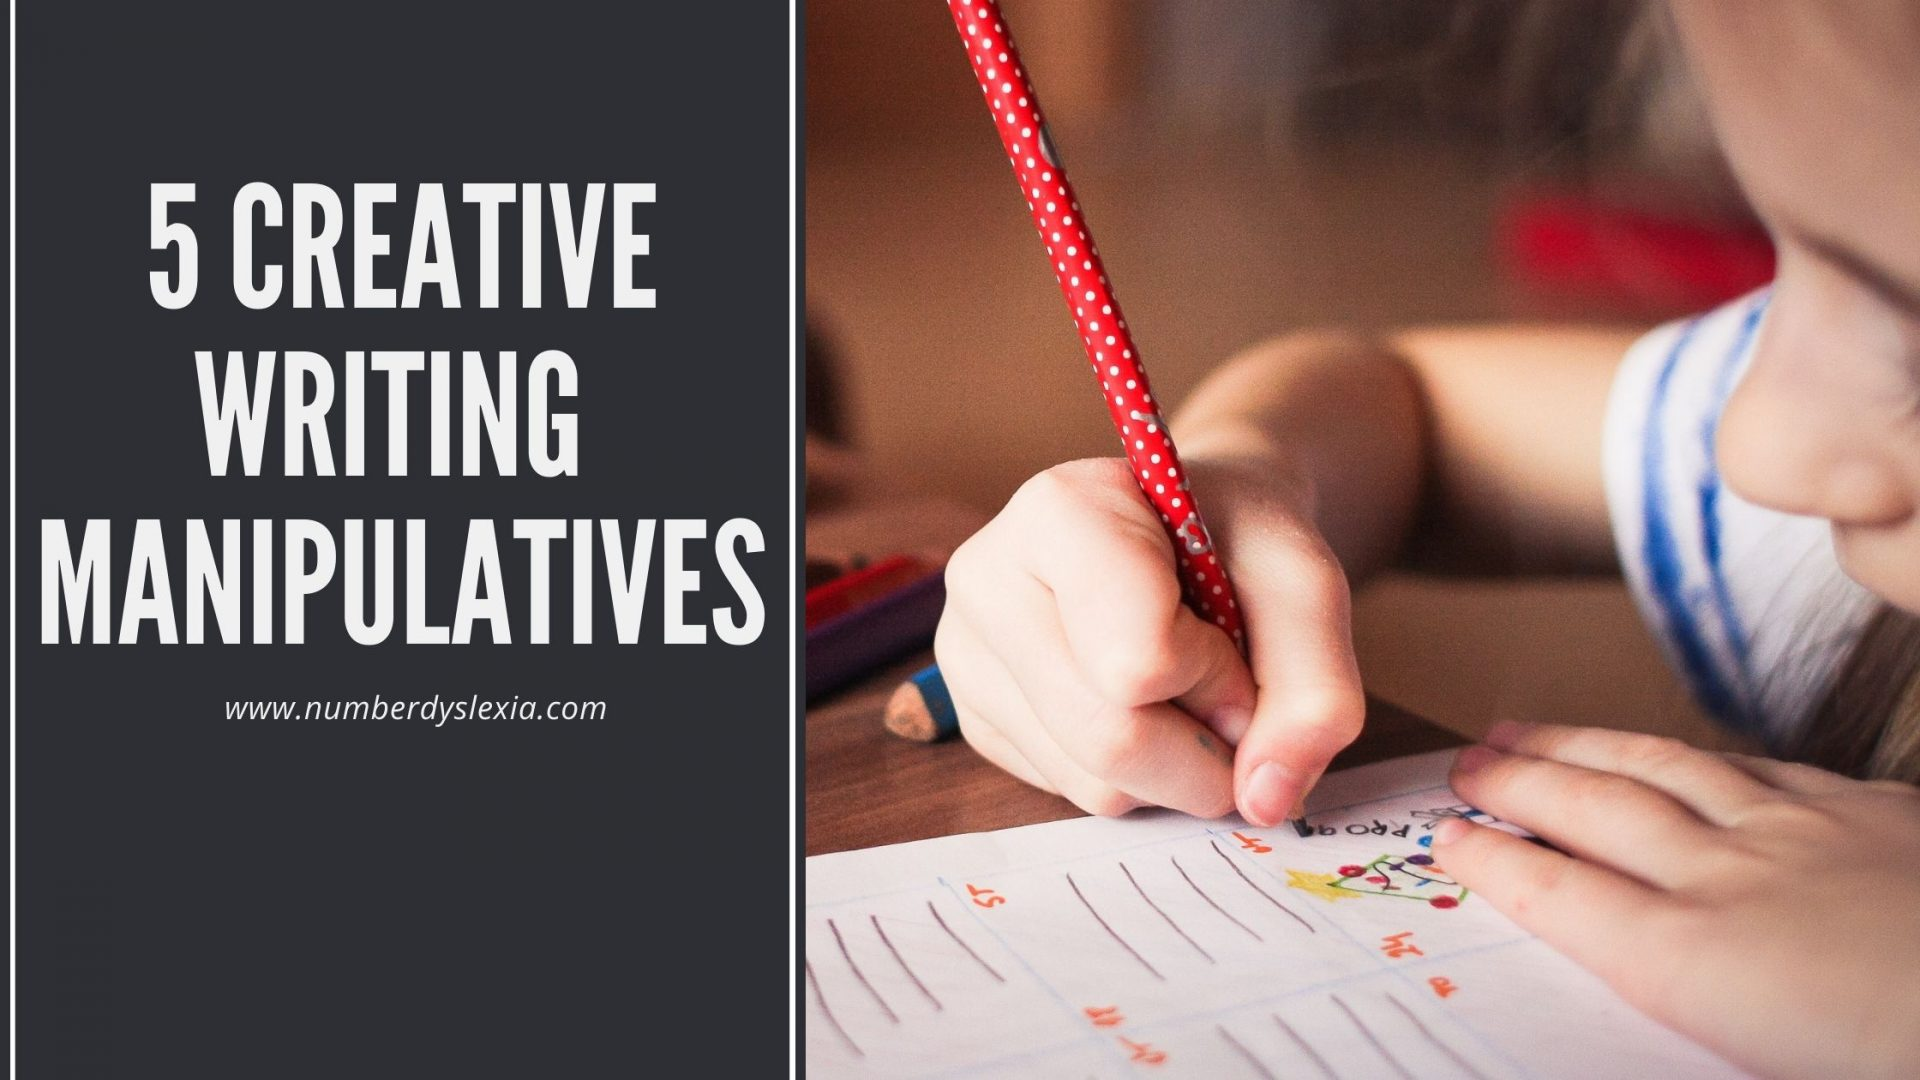 List of top 5 manipulatives for writing